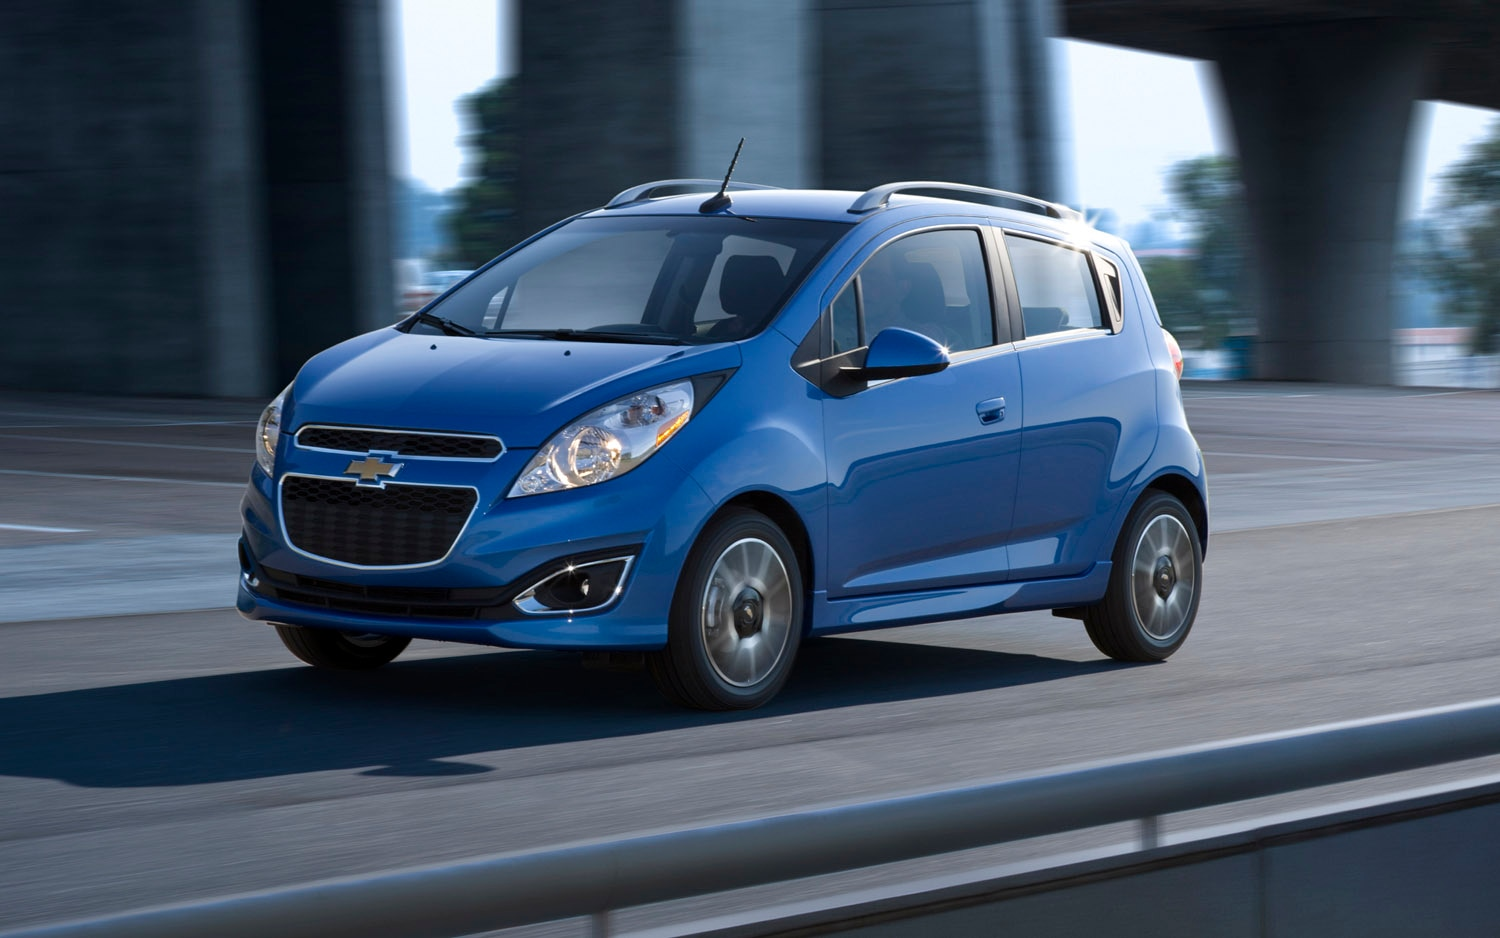 2013 Chevrolet Spark Front Three Quarter1